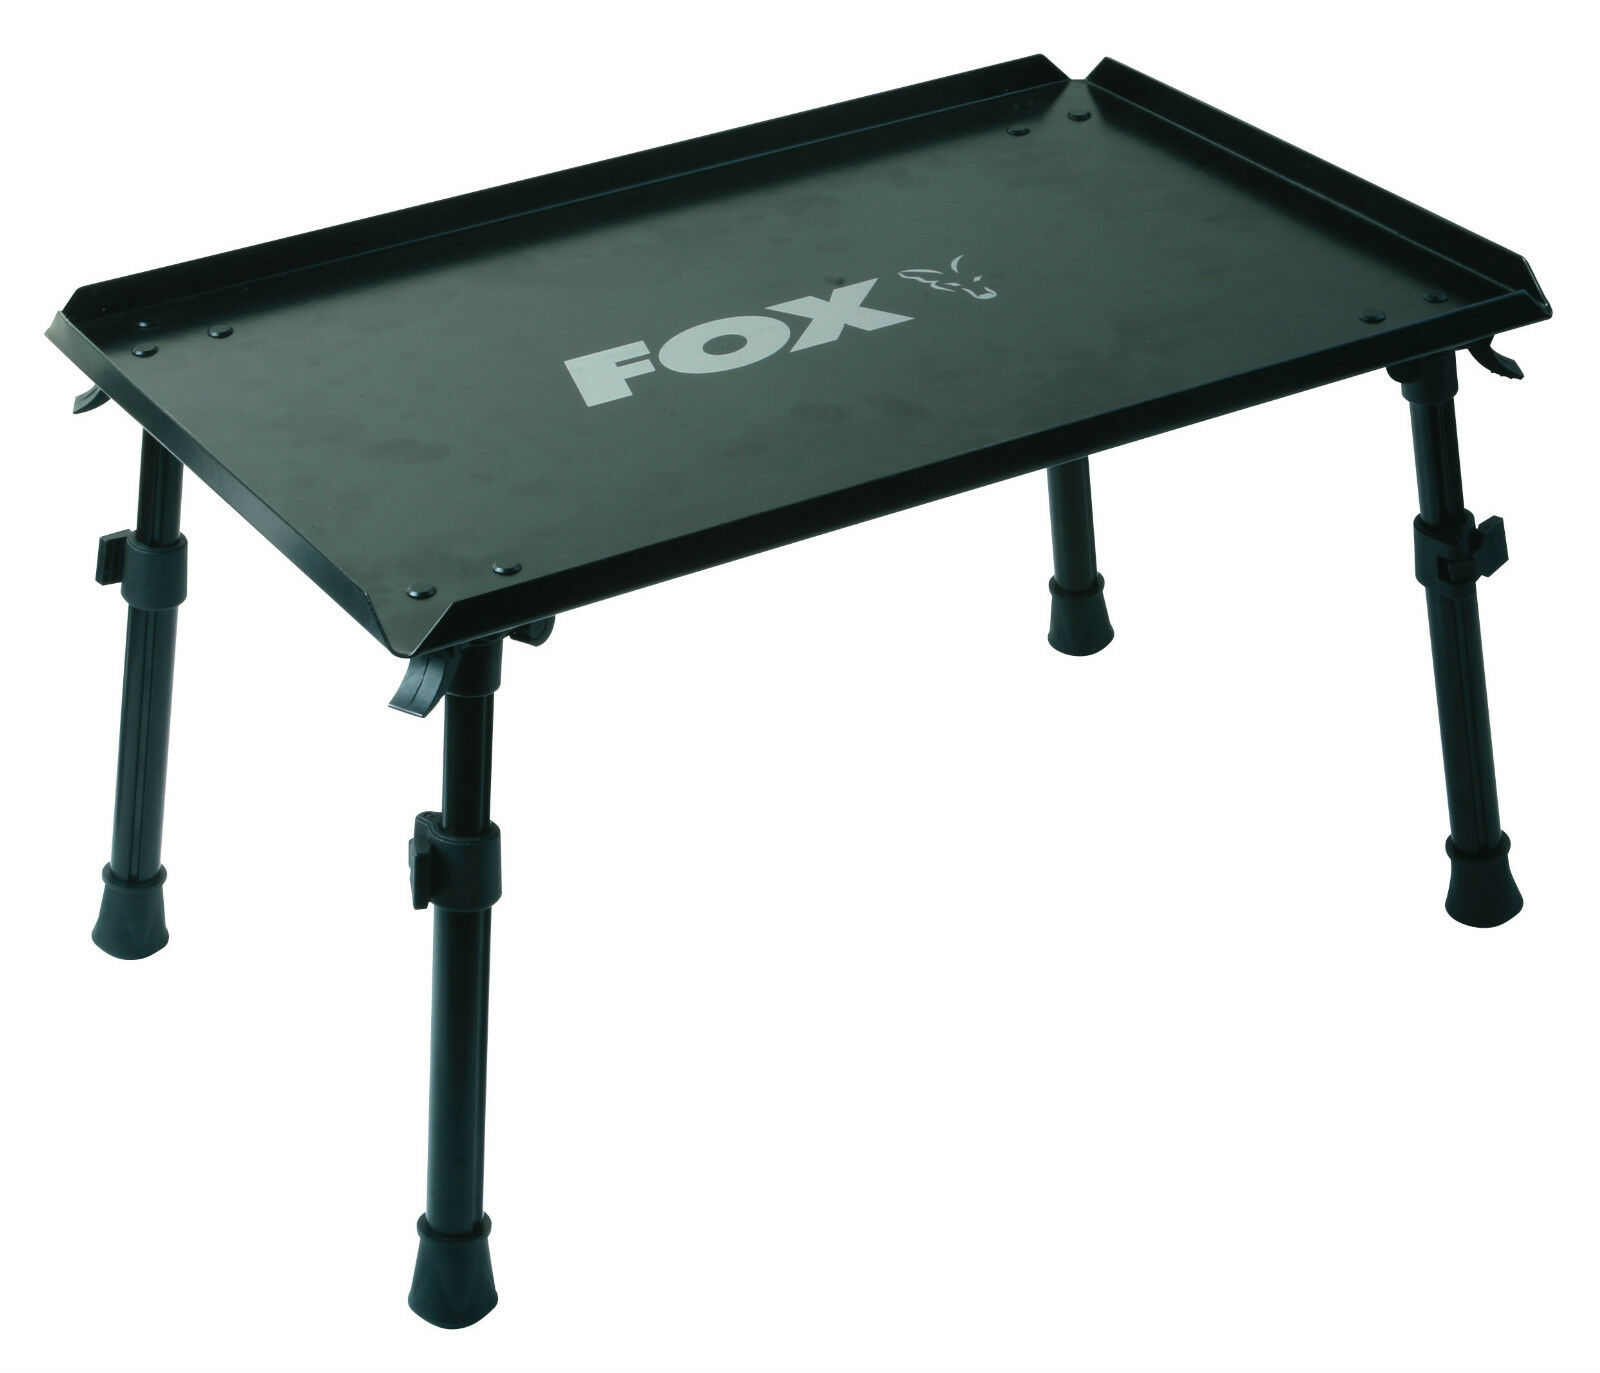 Fox Warrior Mesa de Vivac